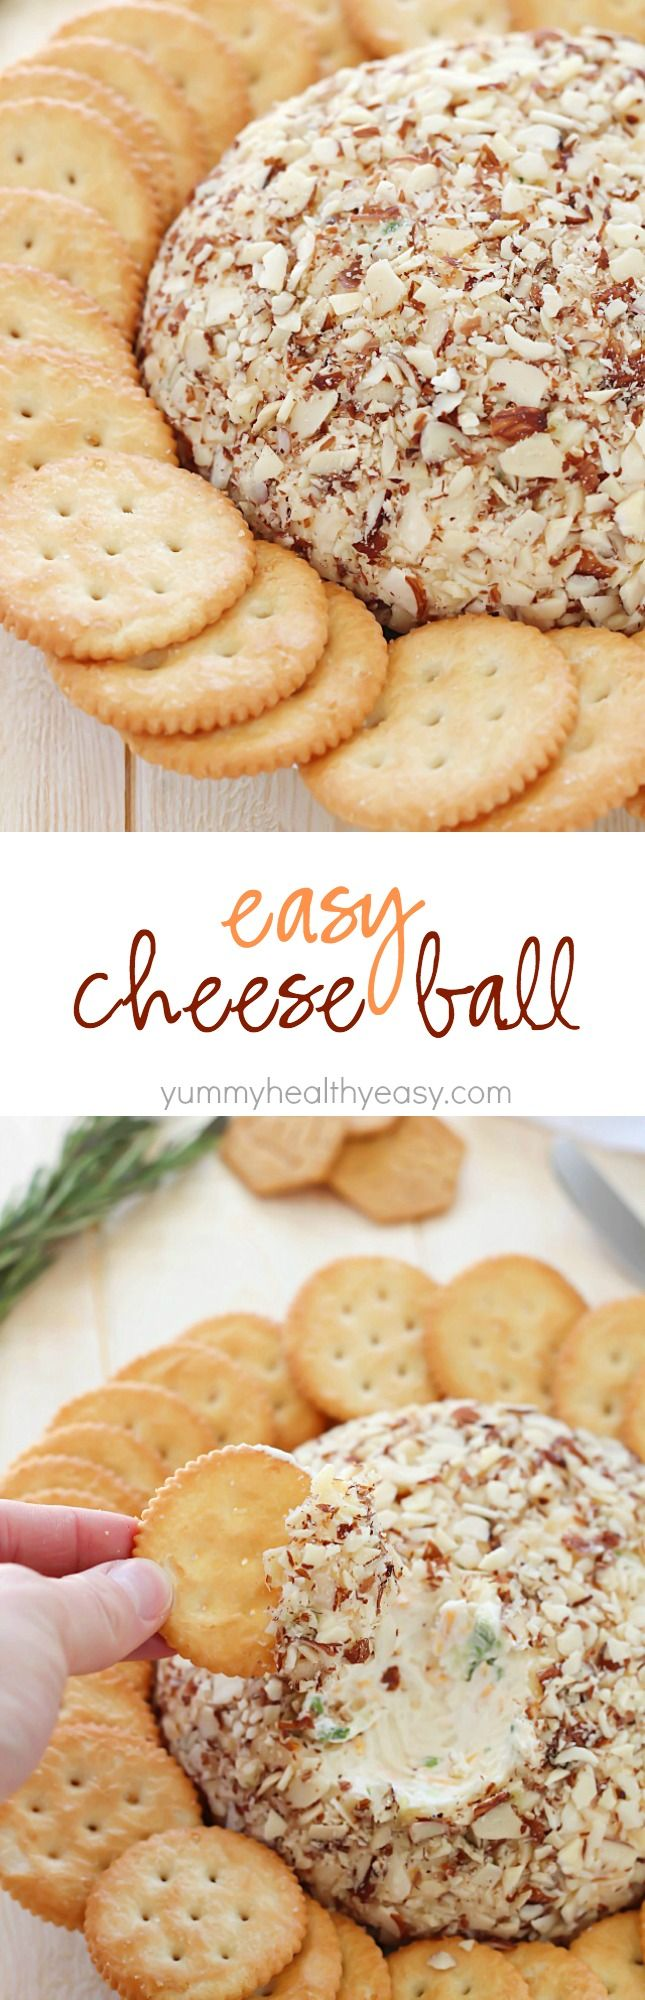 A super easy cheese ball that's sure to impress any guests! It's creamy, tangy, irresistible and won't take more than a few minutes to whip up!